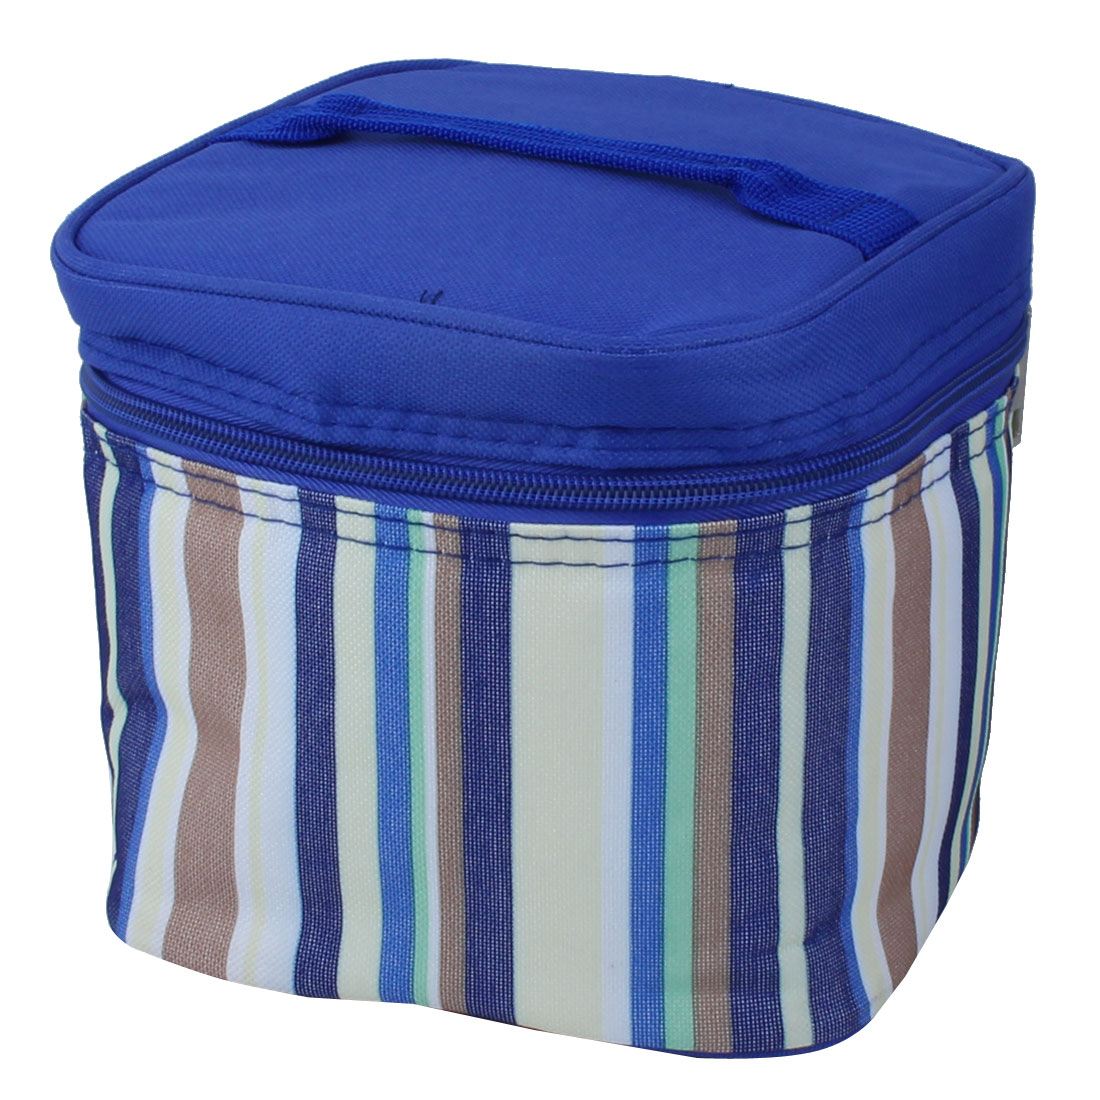 Portable Stripes Design Thermal Cooler Insulated Lunch Box Storage Picnic Bag Tote Pouch Blue